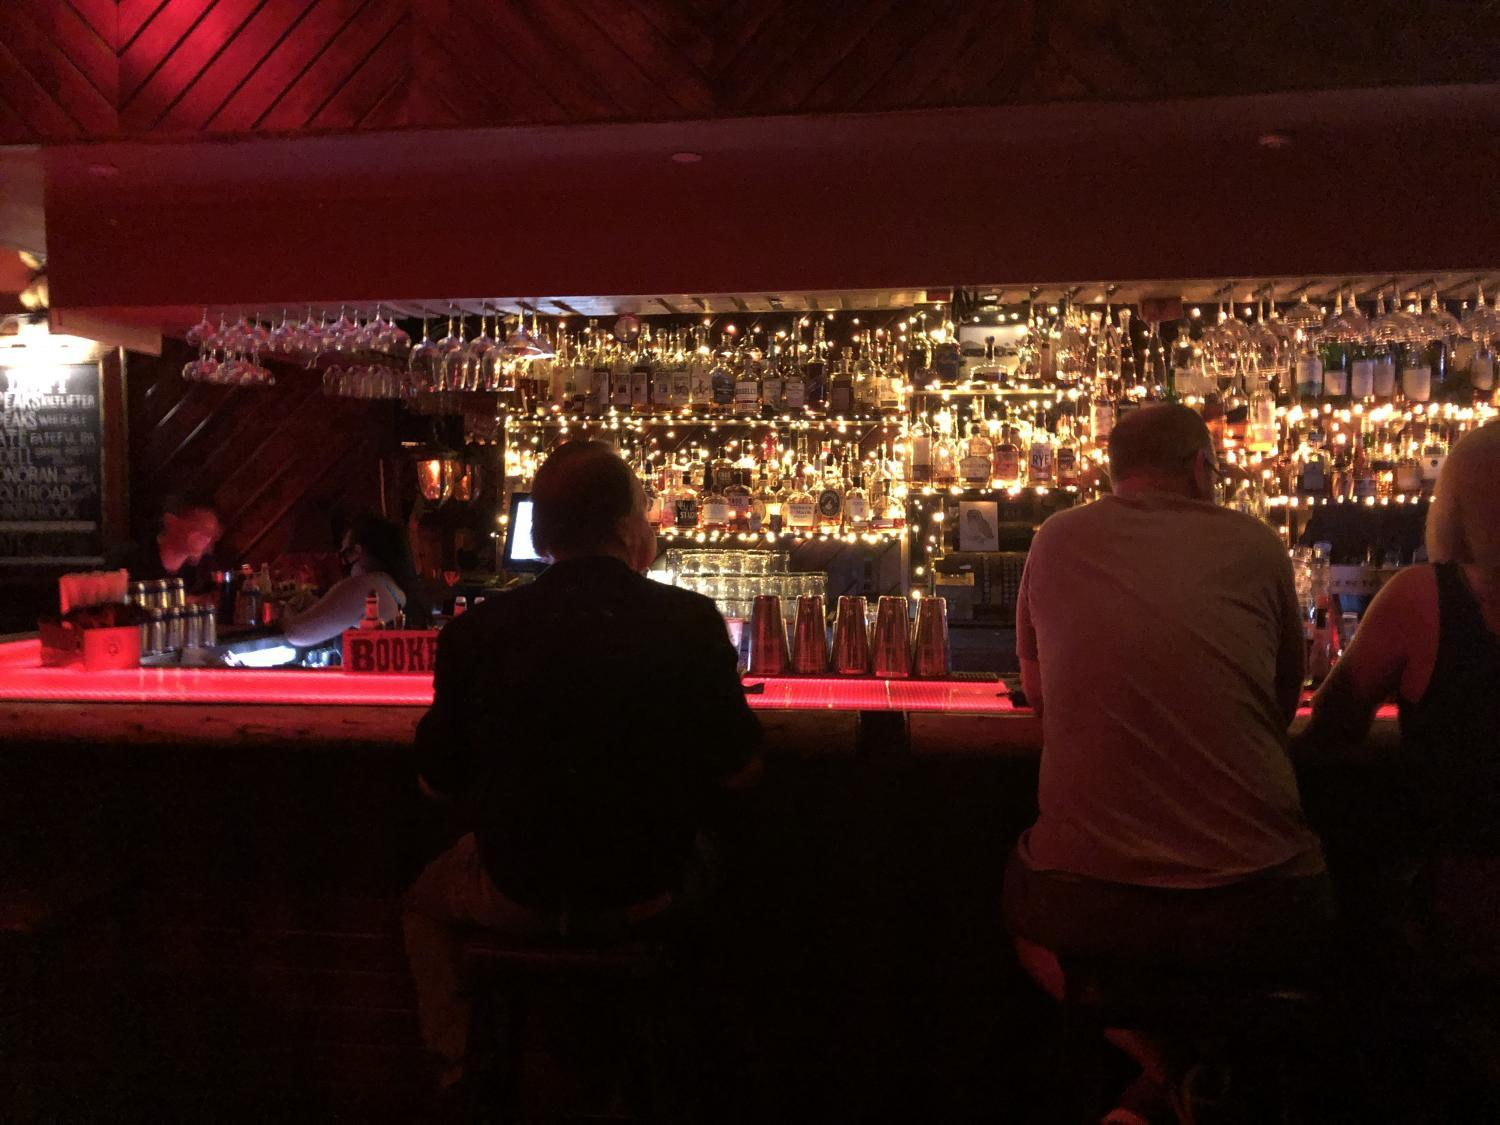 Customers sit at the bar at The Little Woody in Arcadia.